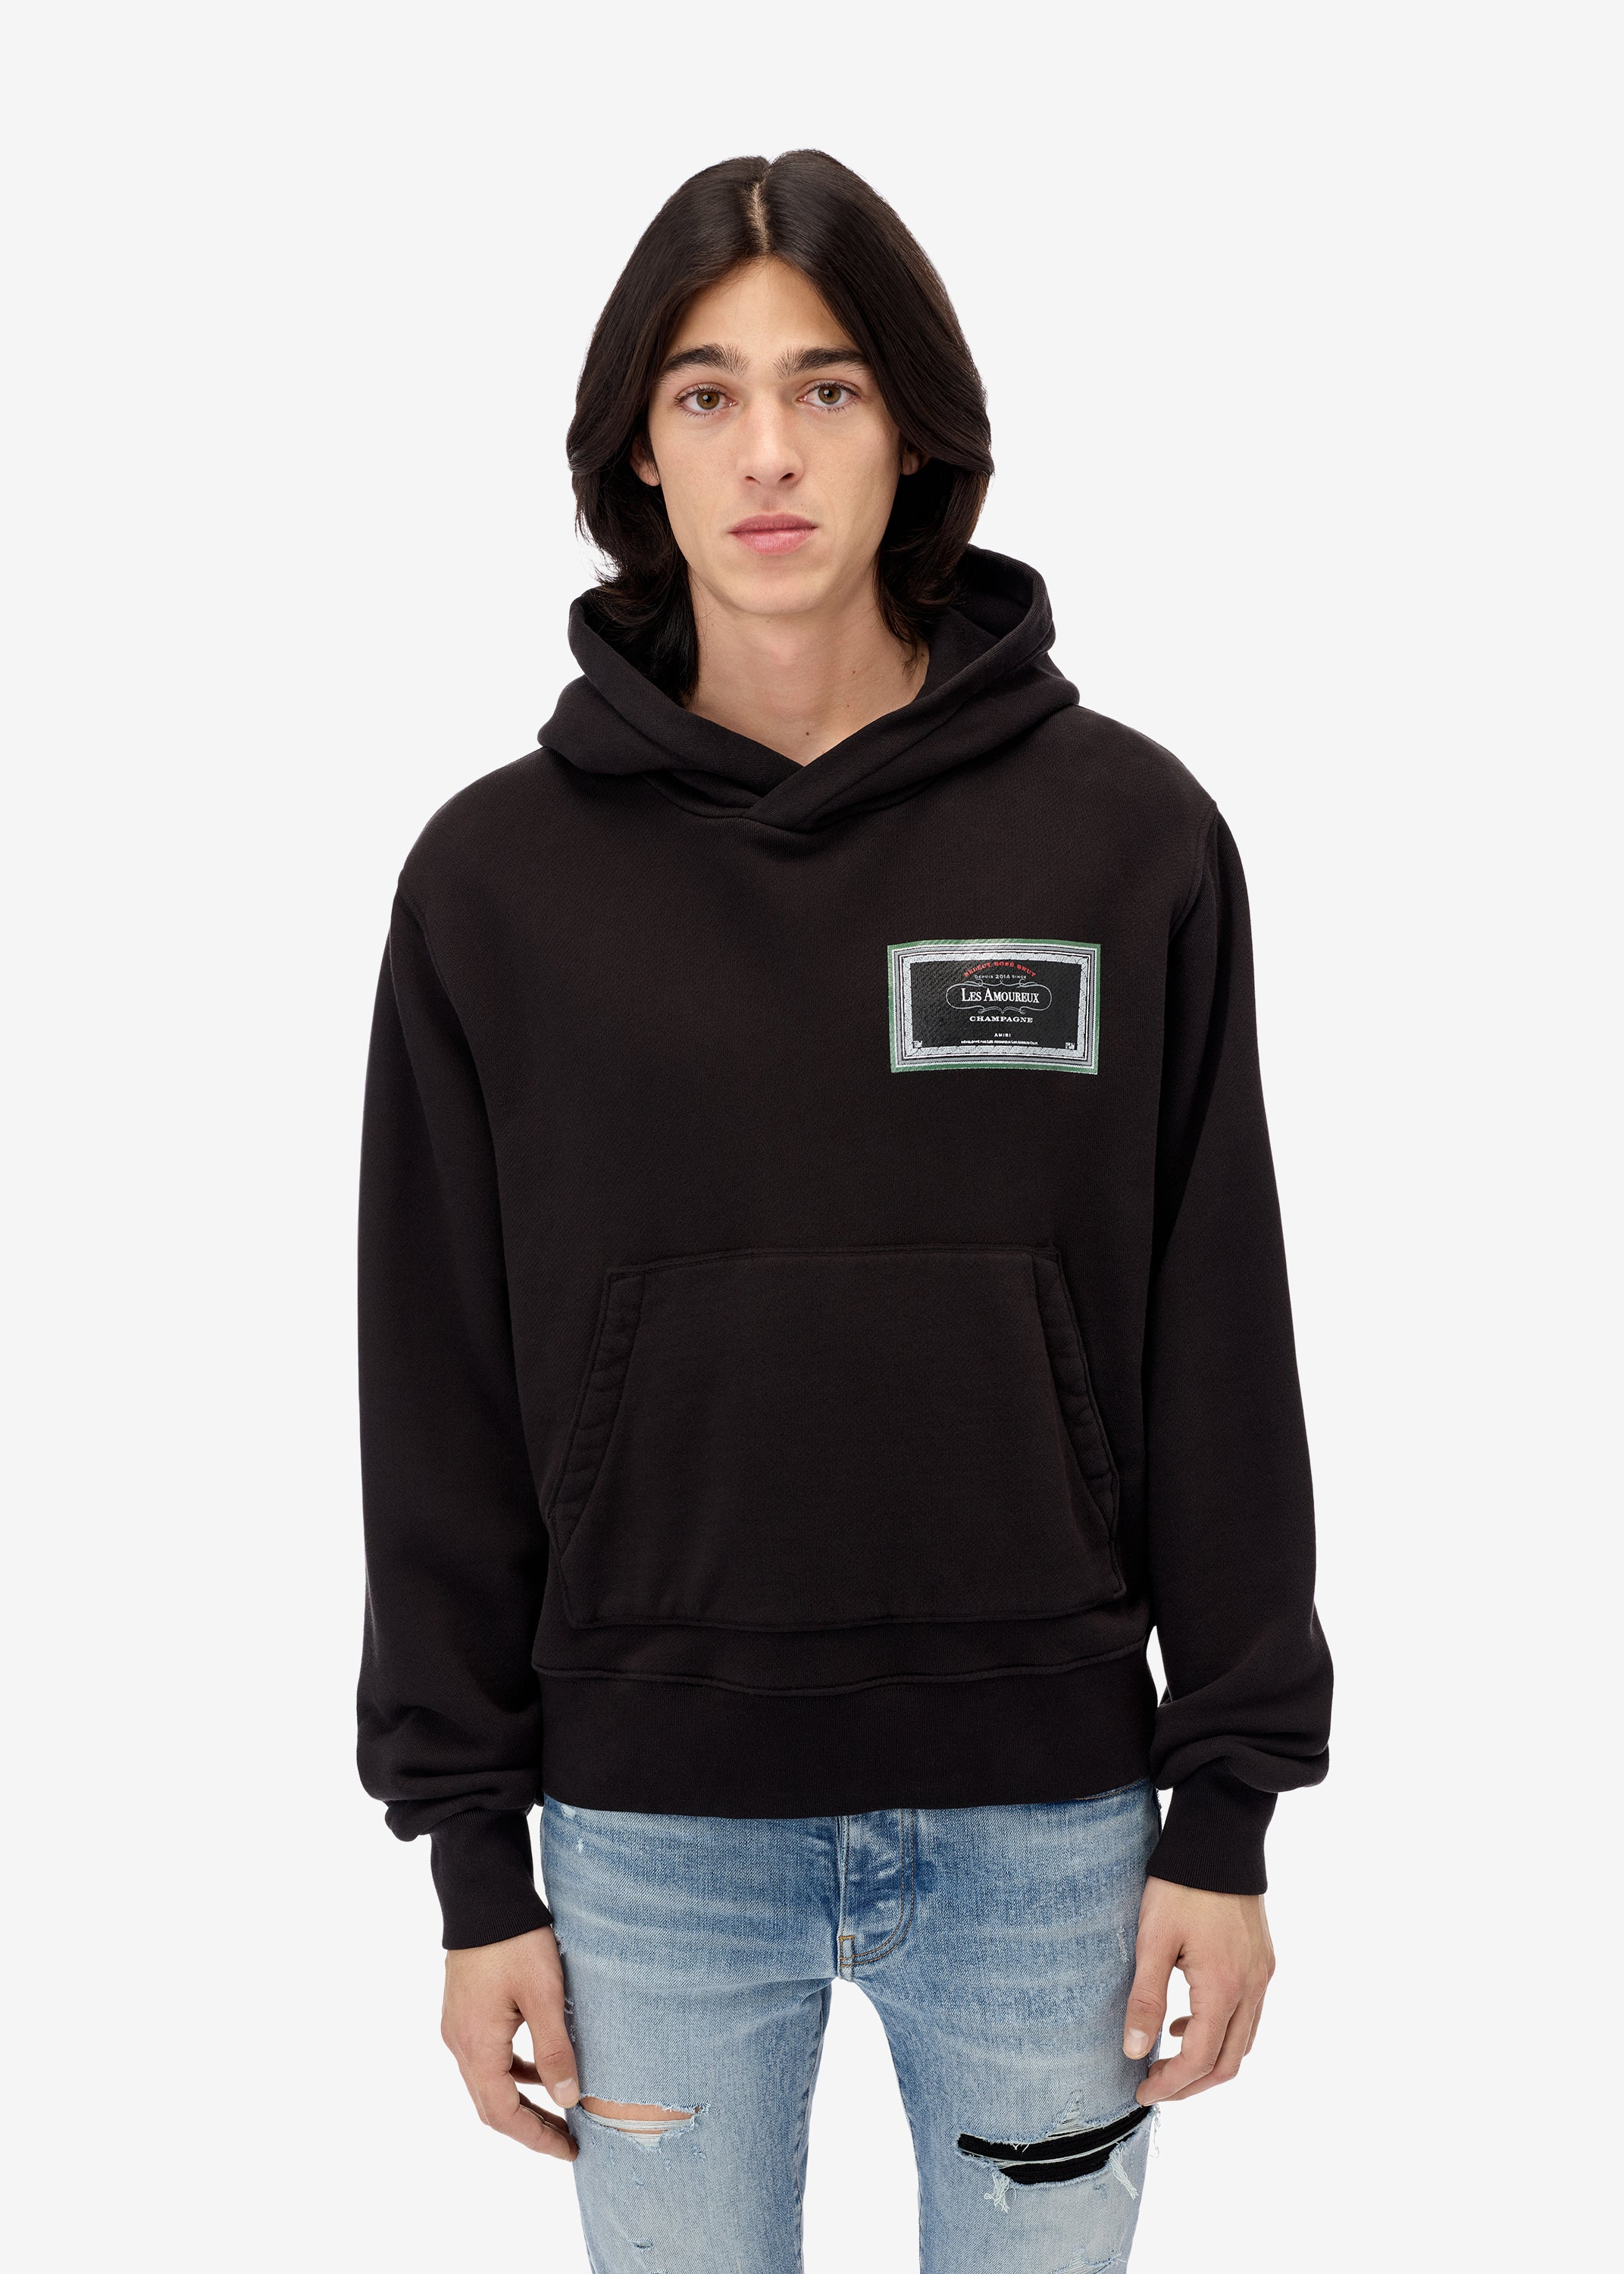 les-amoureux-gel-label-hoodie-web-exclusive-black-image-1